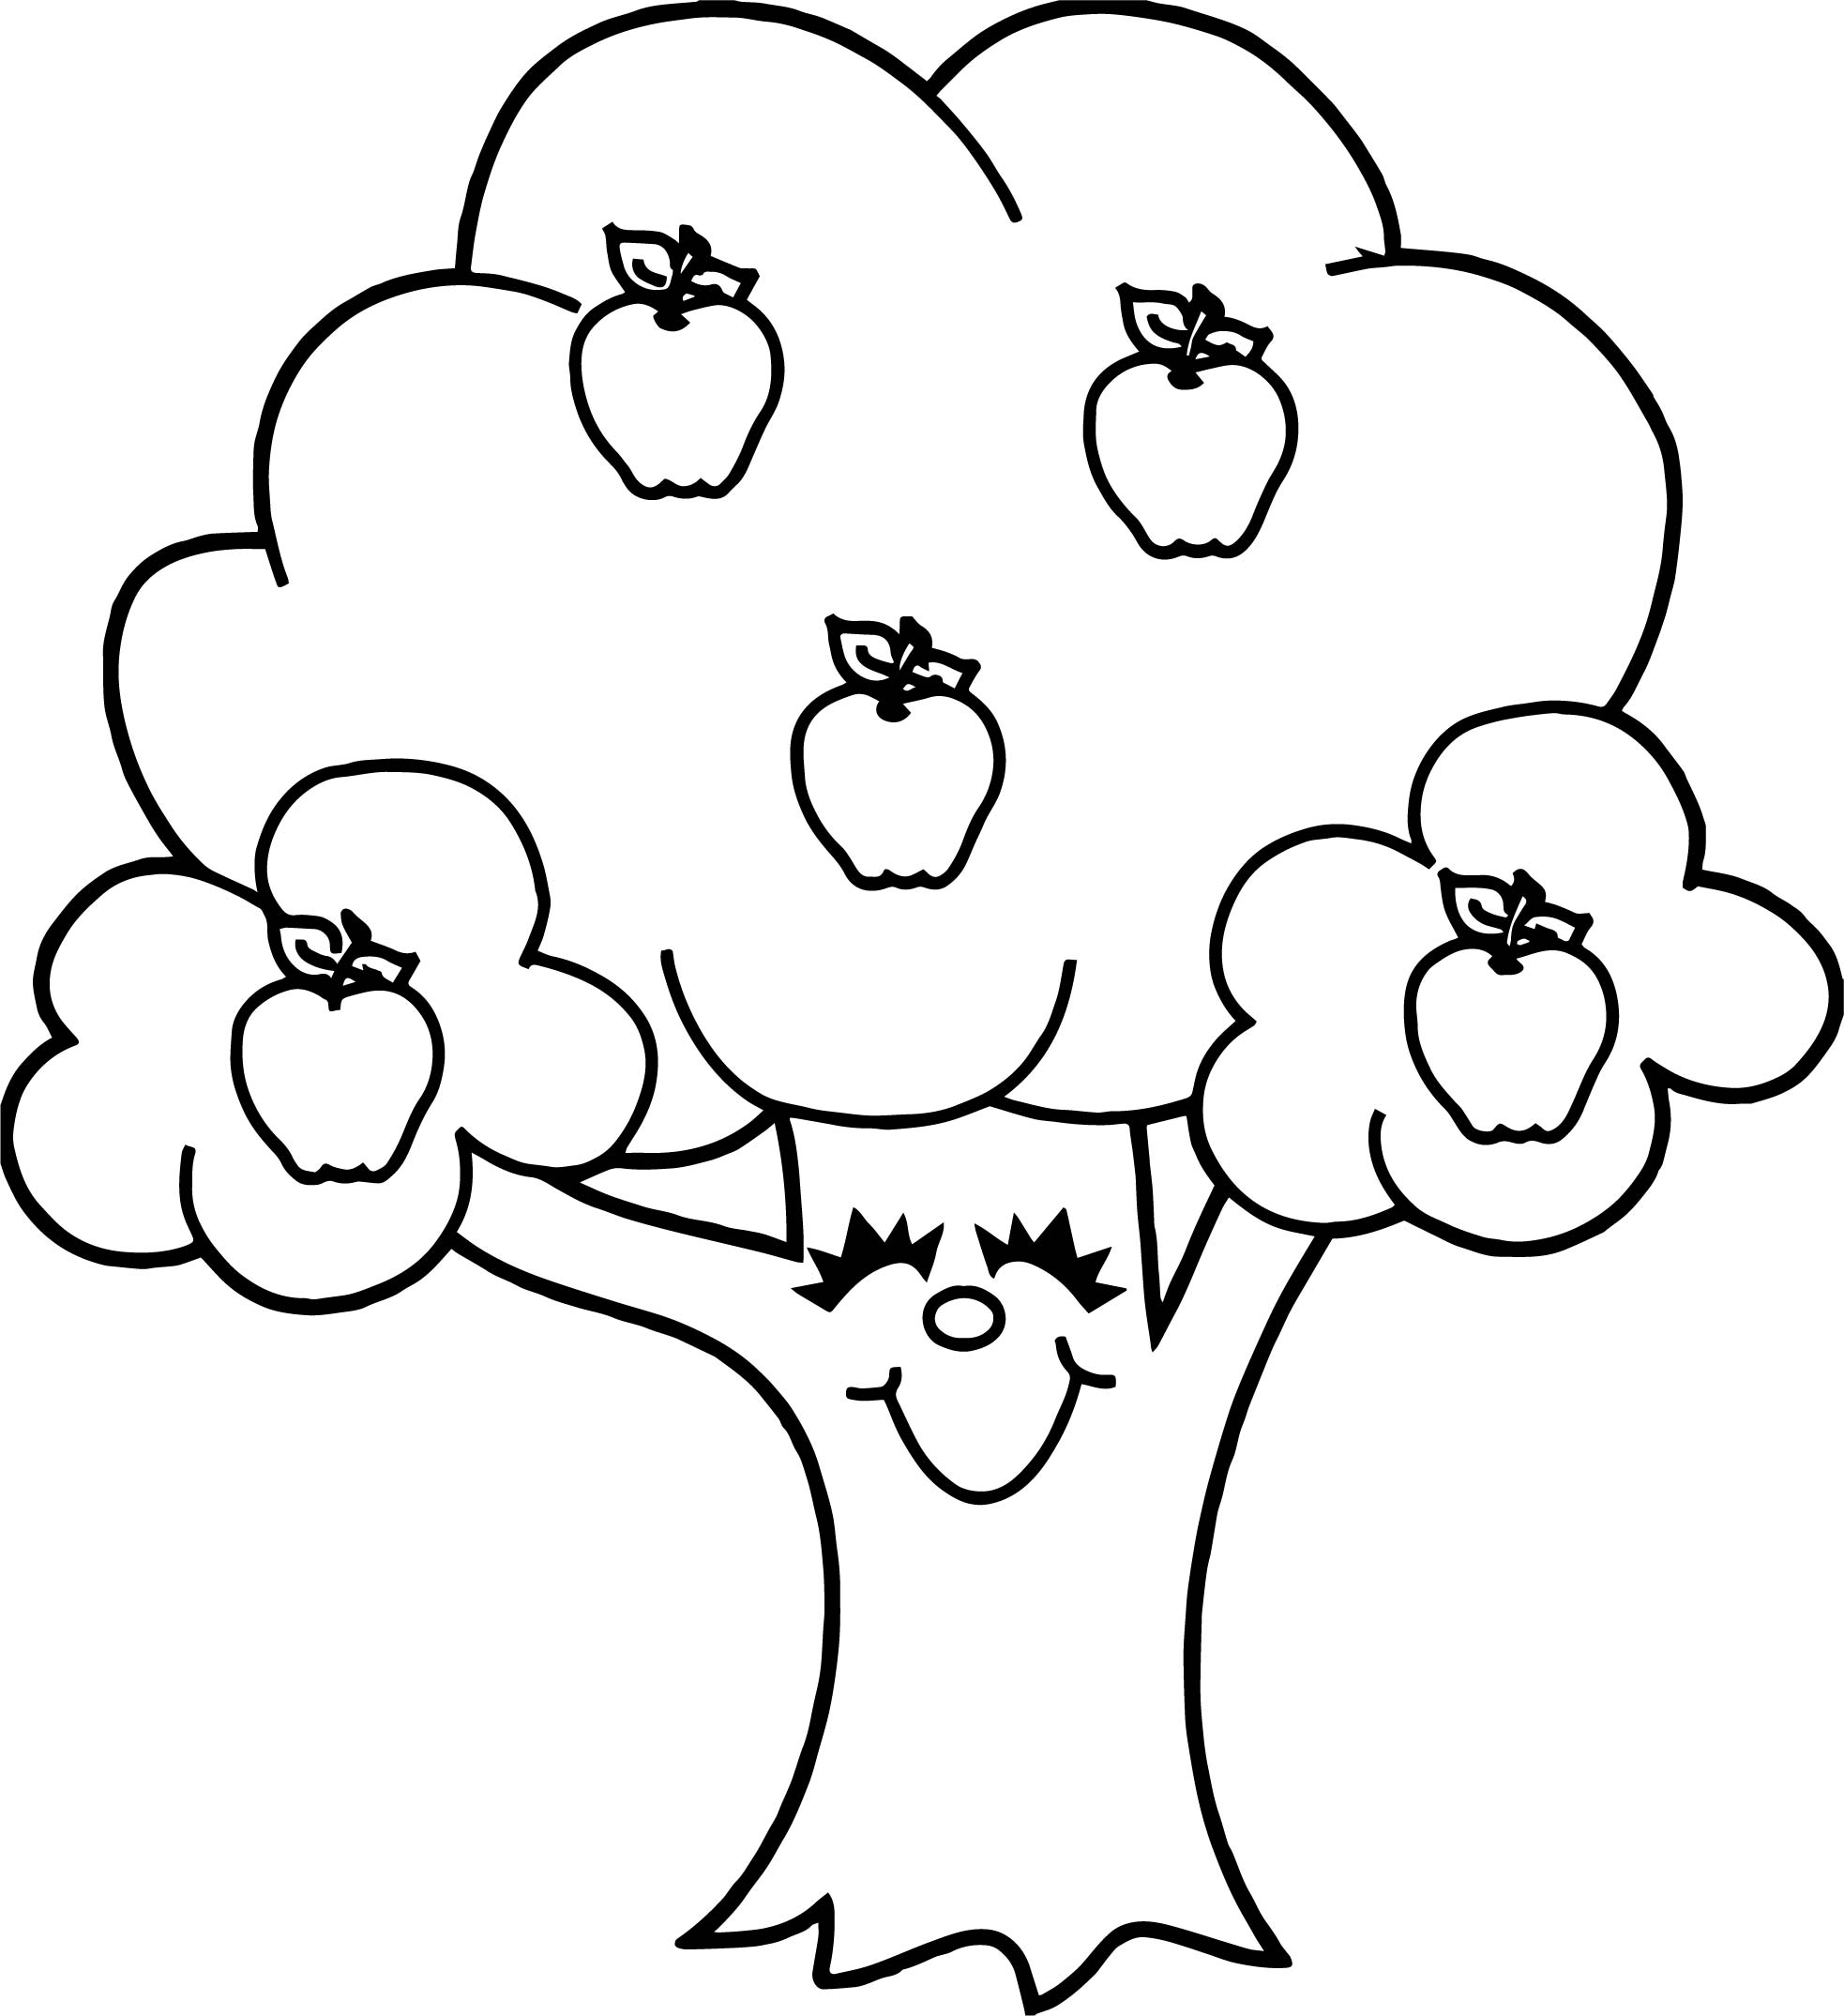 Funny apple tree coloring page for Apple coloring pages